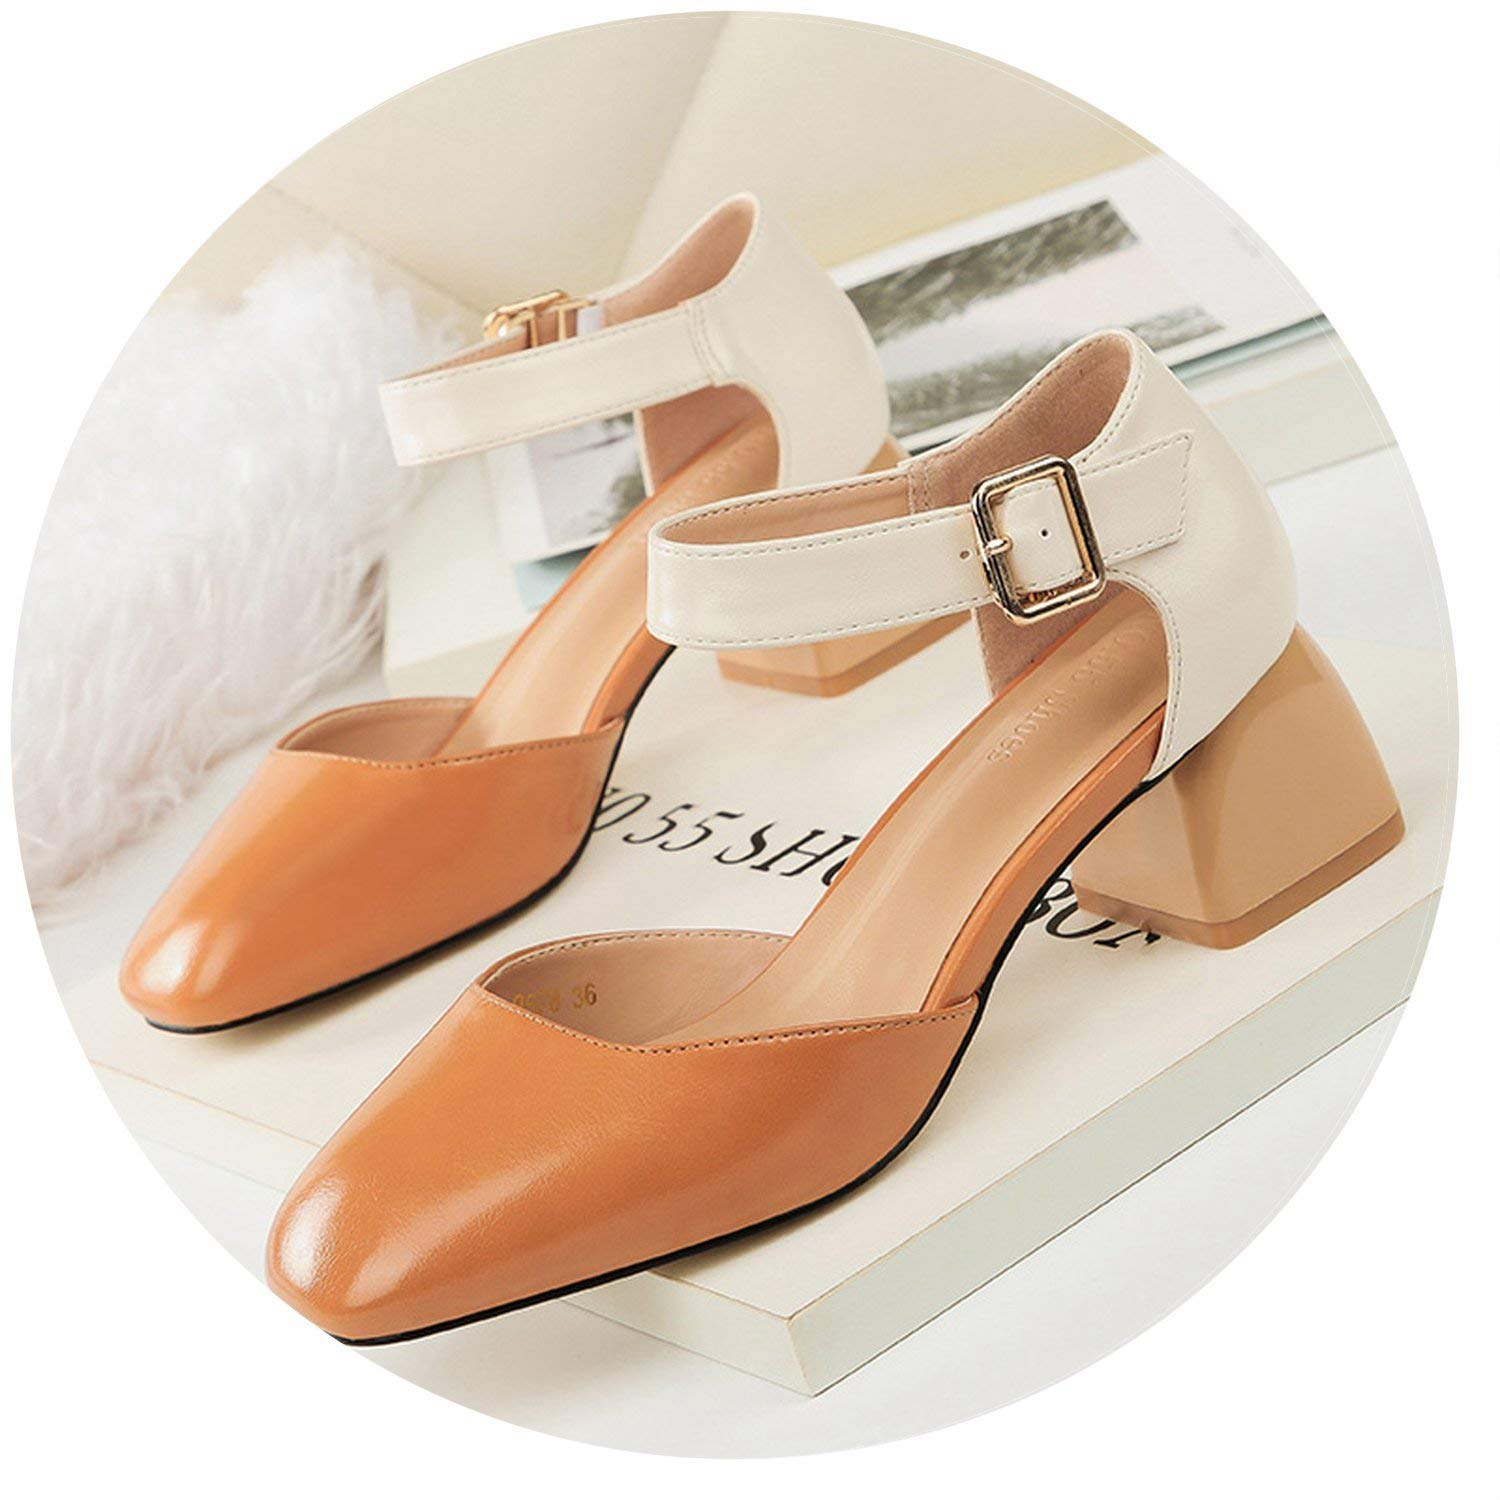 e7c109654f5 Get Quotations · Shiny-Fashion-Dream-mules-shoes Woman Block High Heels  Sandals Mules Buckle